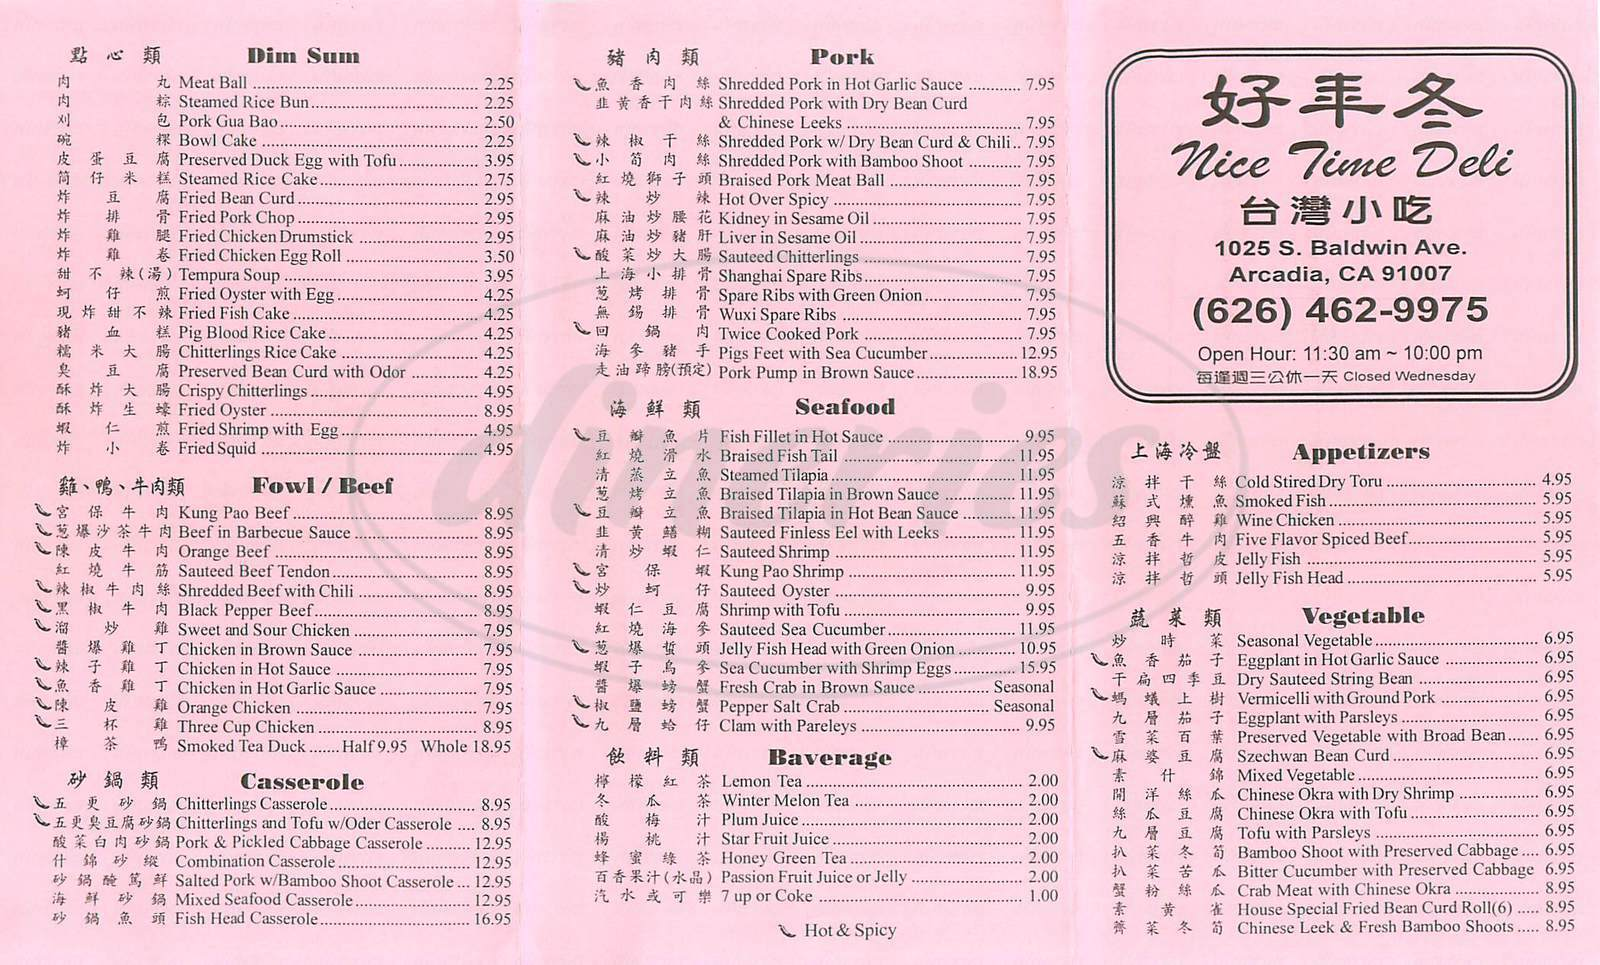 menu for Nice Time Deli